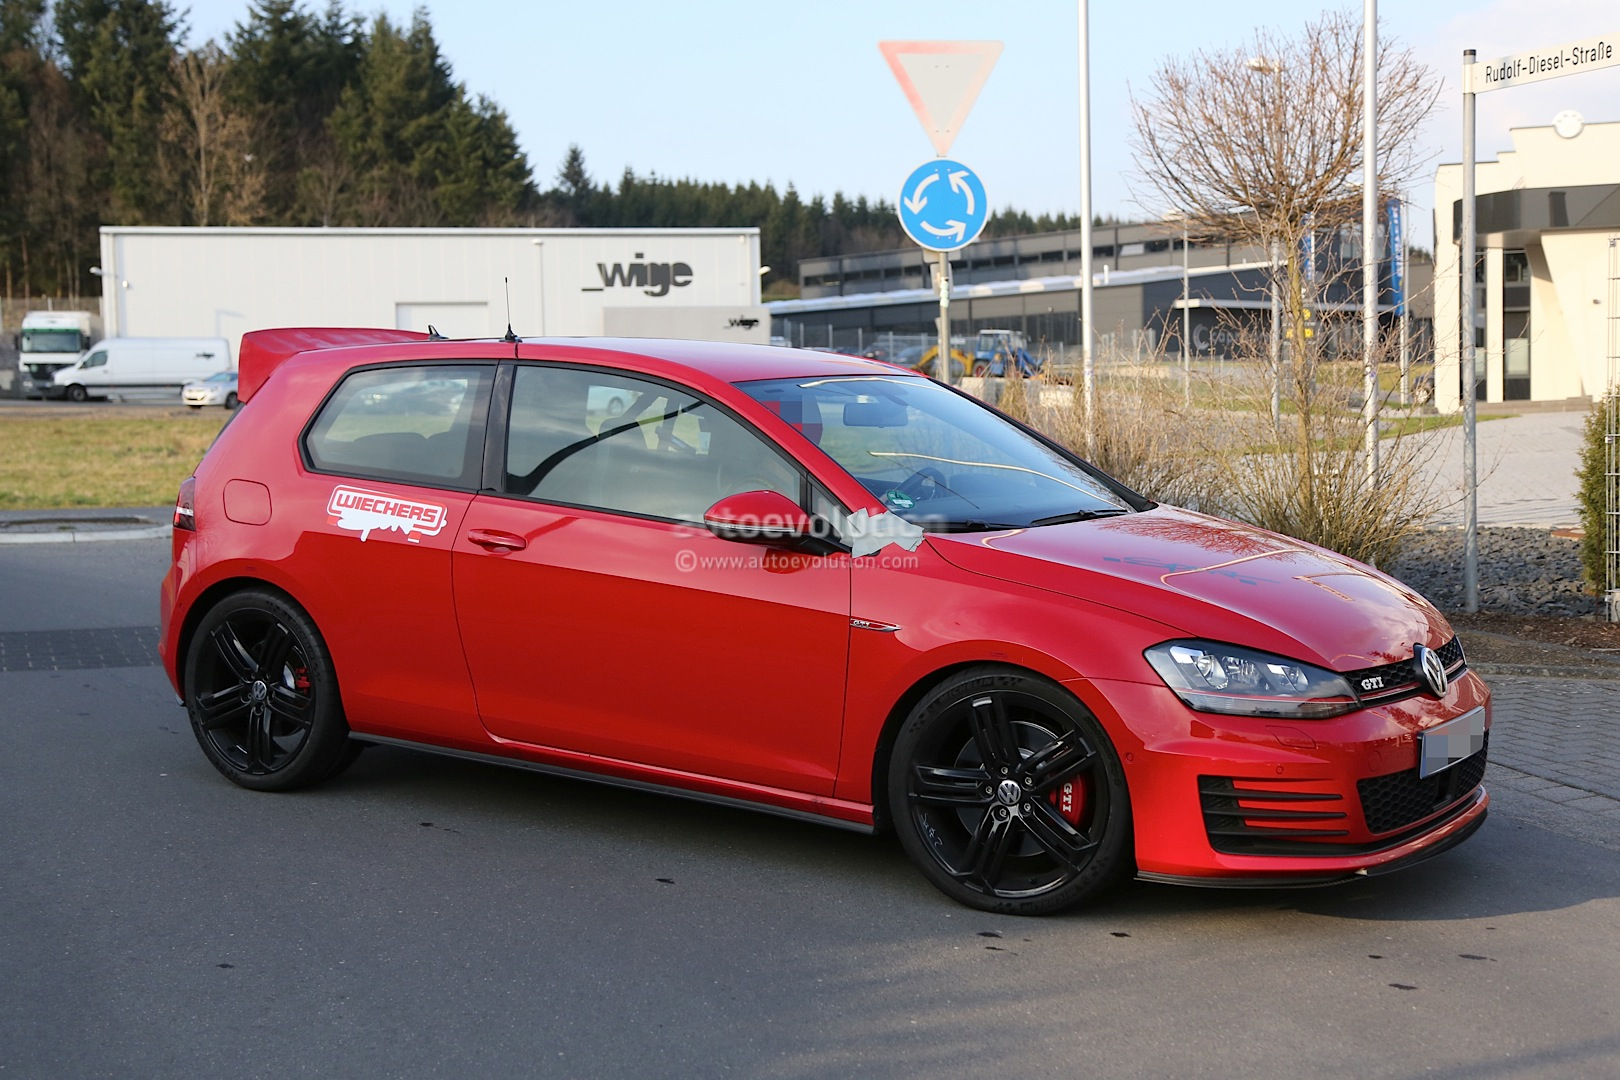 golf gti sport club vw volkswagen hardcore spotted nurburgring spyshots autoevolution cars